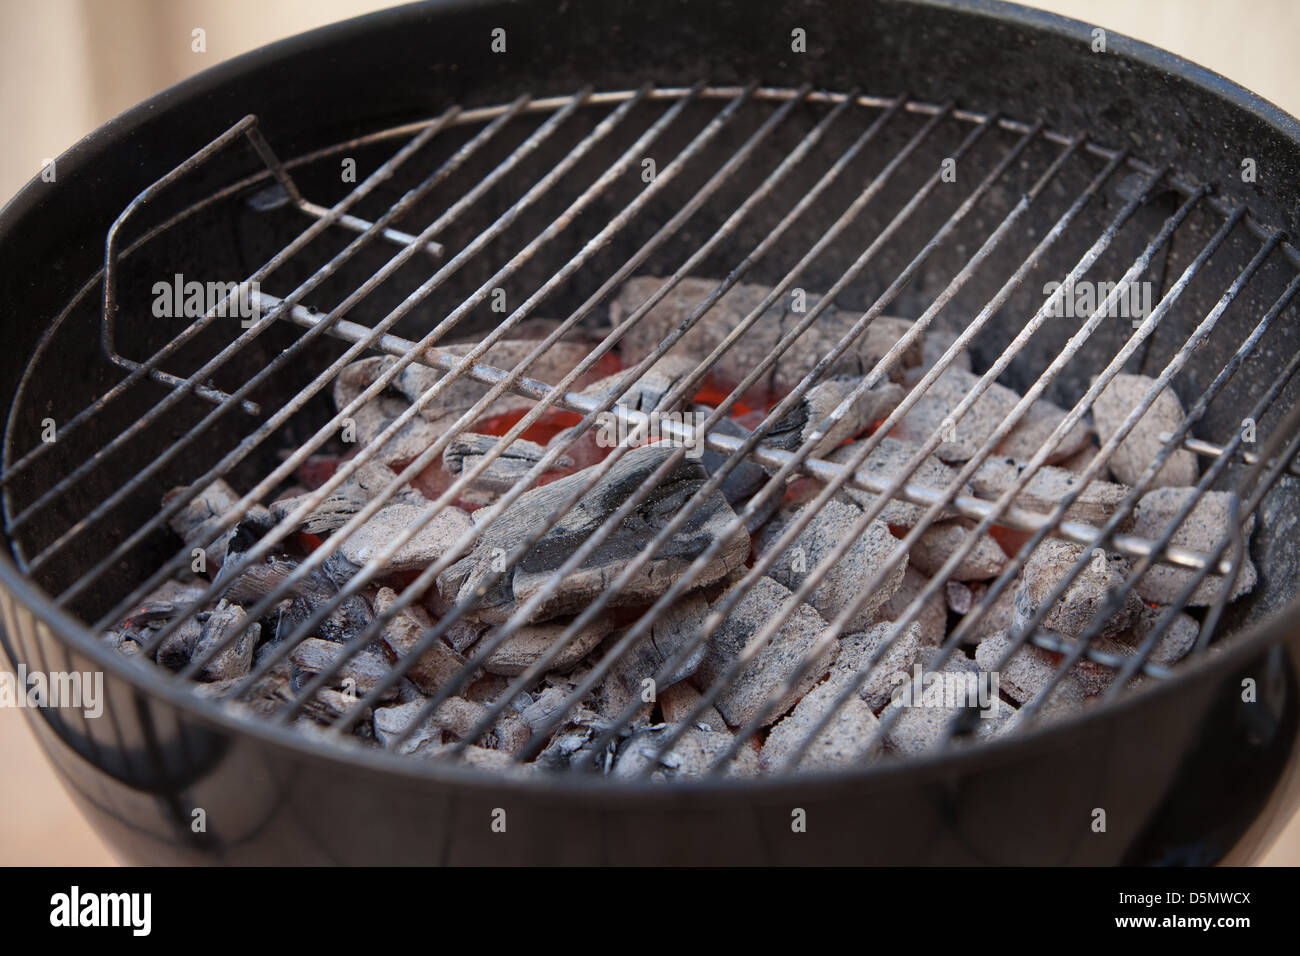 Coal Bbq Coal Grill Stock Photos Coal Grill Stock Images Alamy